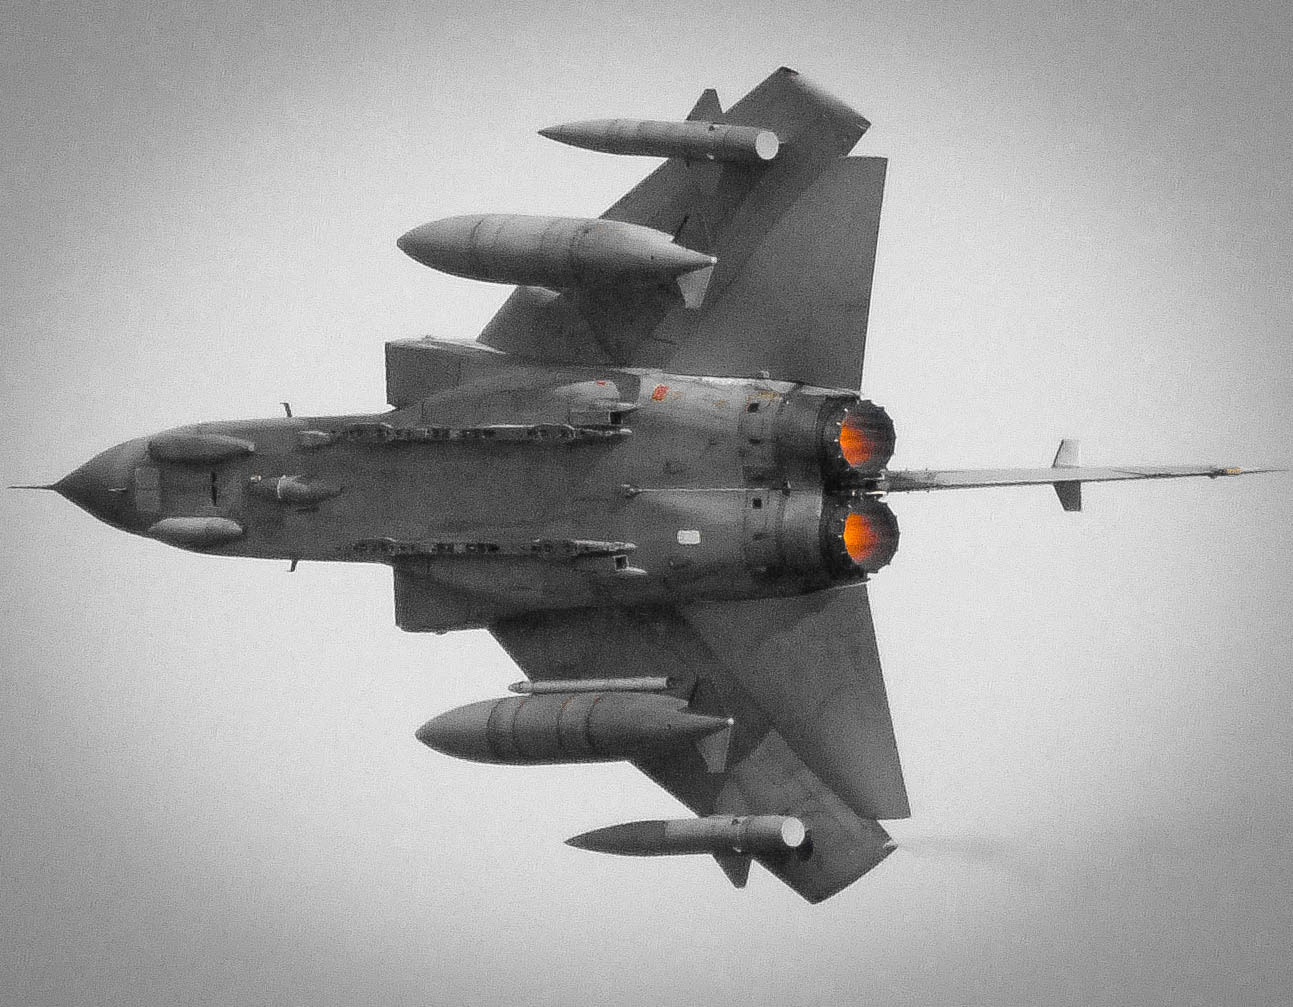 Photograph Tornado GR4, August 2012, Eastbourne by Phil Clarkstone on 500px